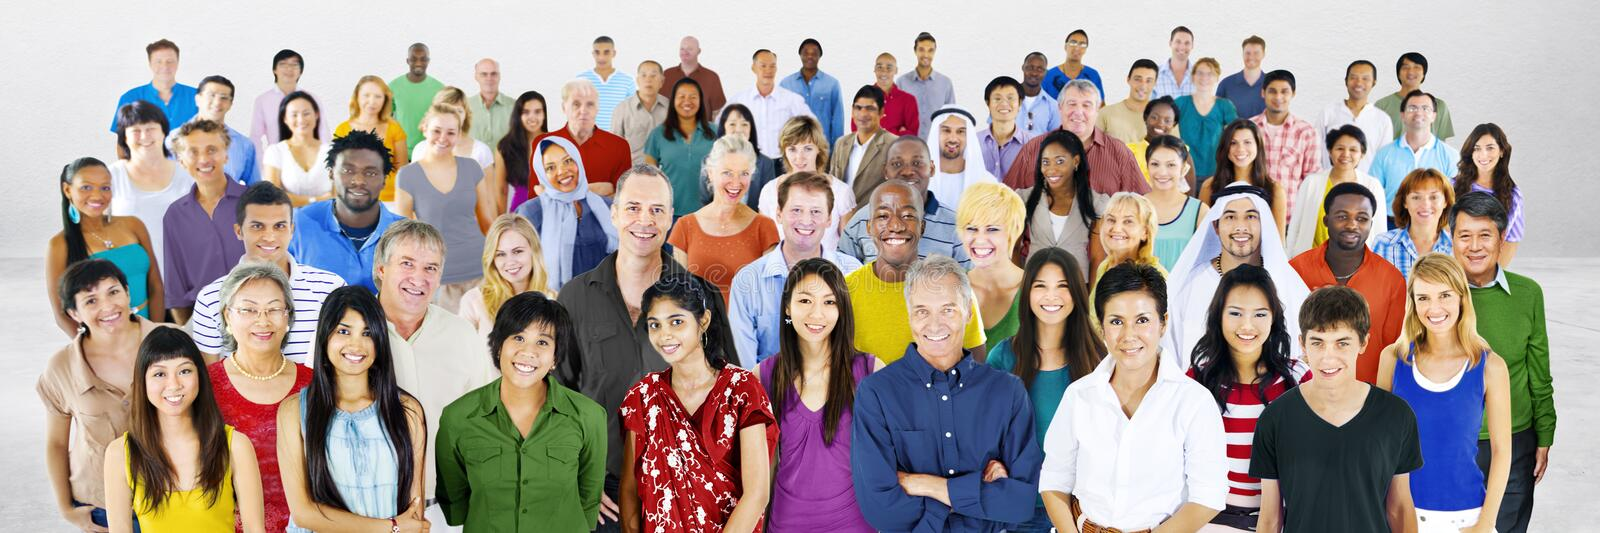 Diversity Large Group of People Multiethnic Concept stock photo